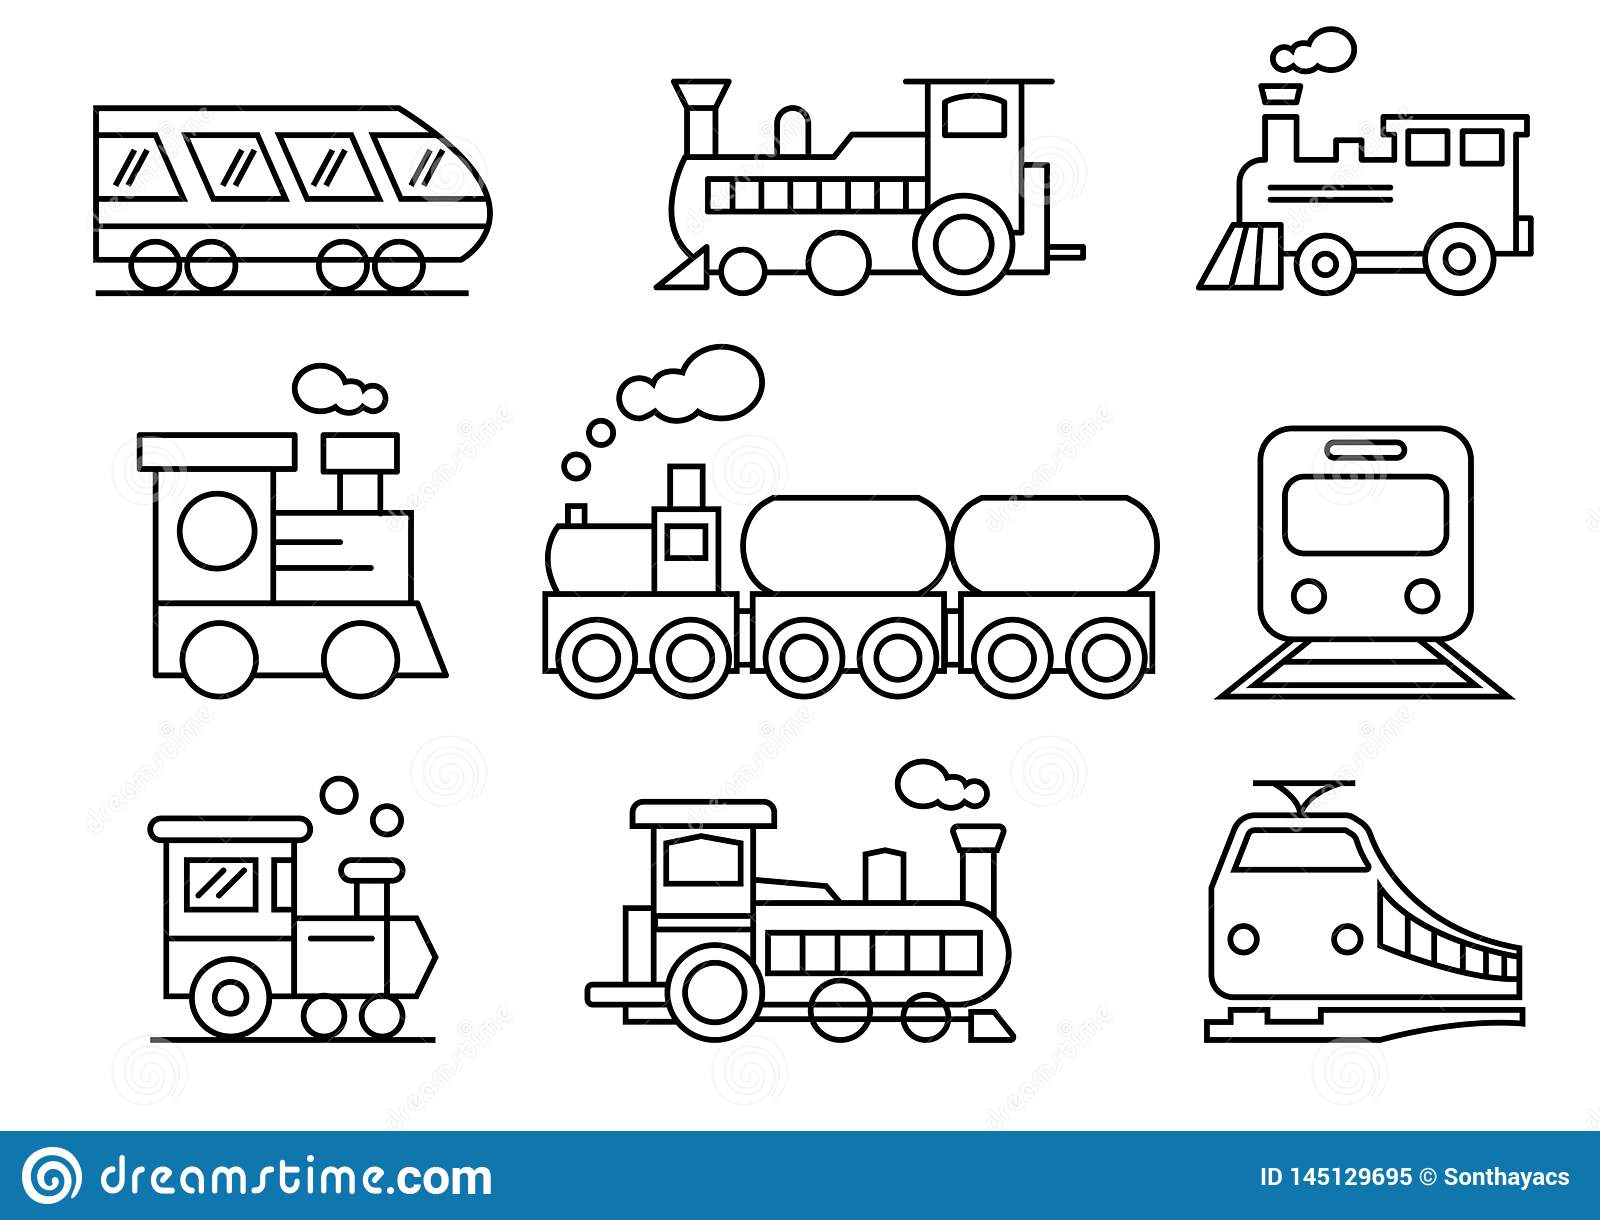 Line icons set,transportation,Train,vector illustrations